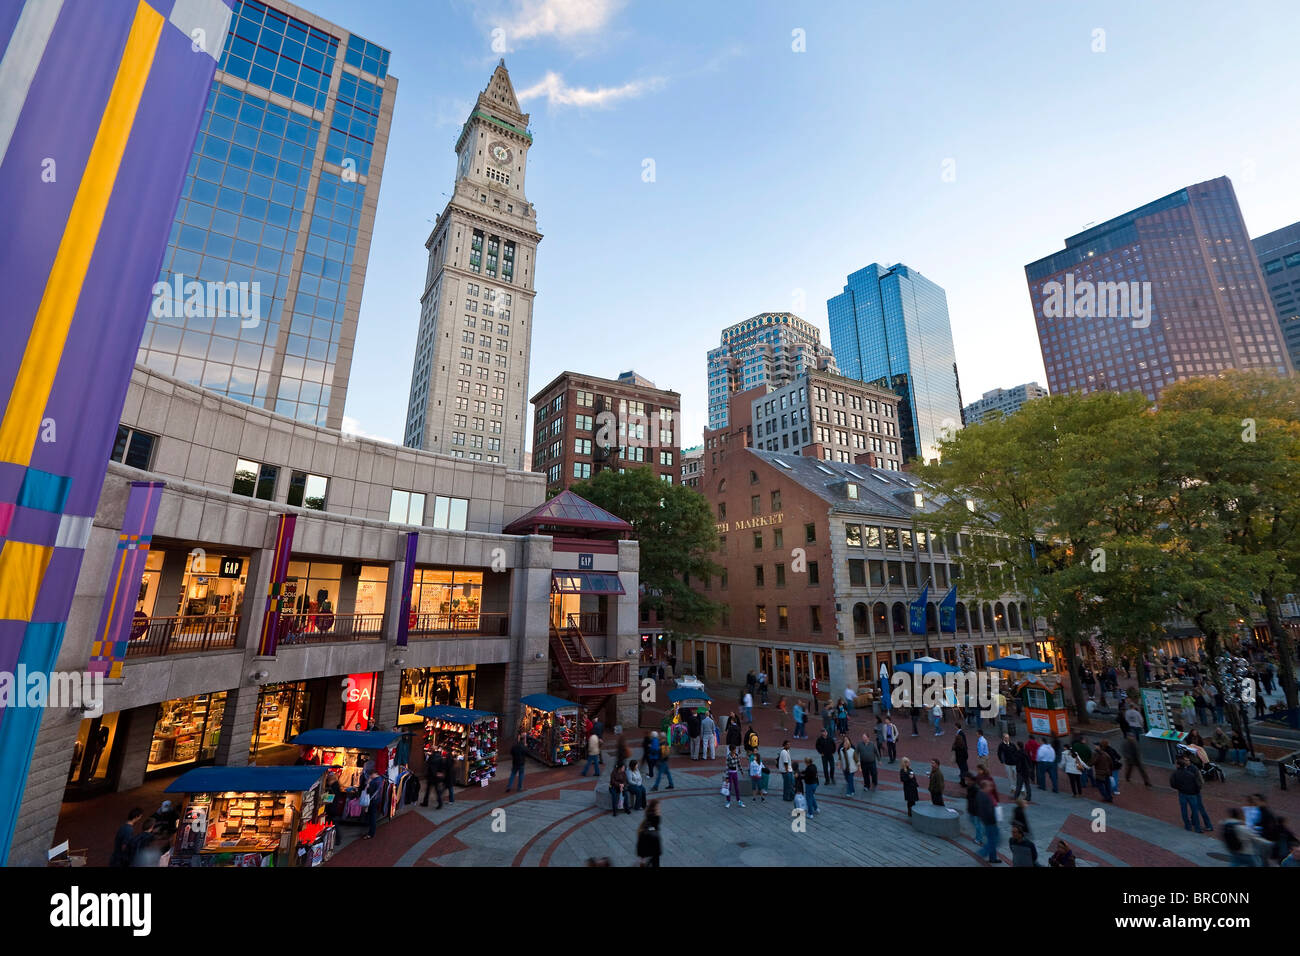 Mercado de Quincy, Boston, Massachusetts, Nueva Inglaterra, EE.UU. Foto de stock